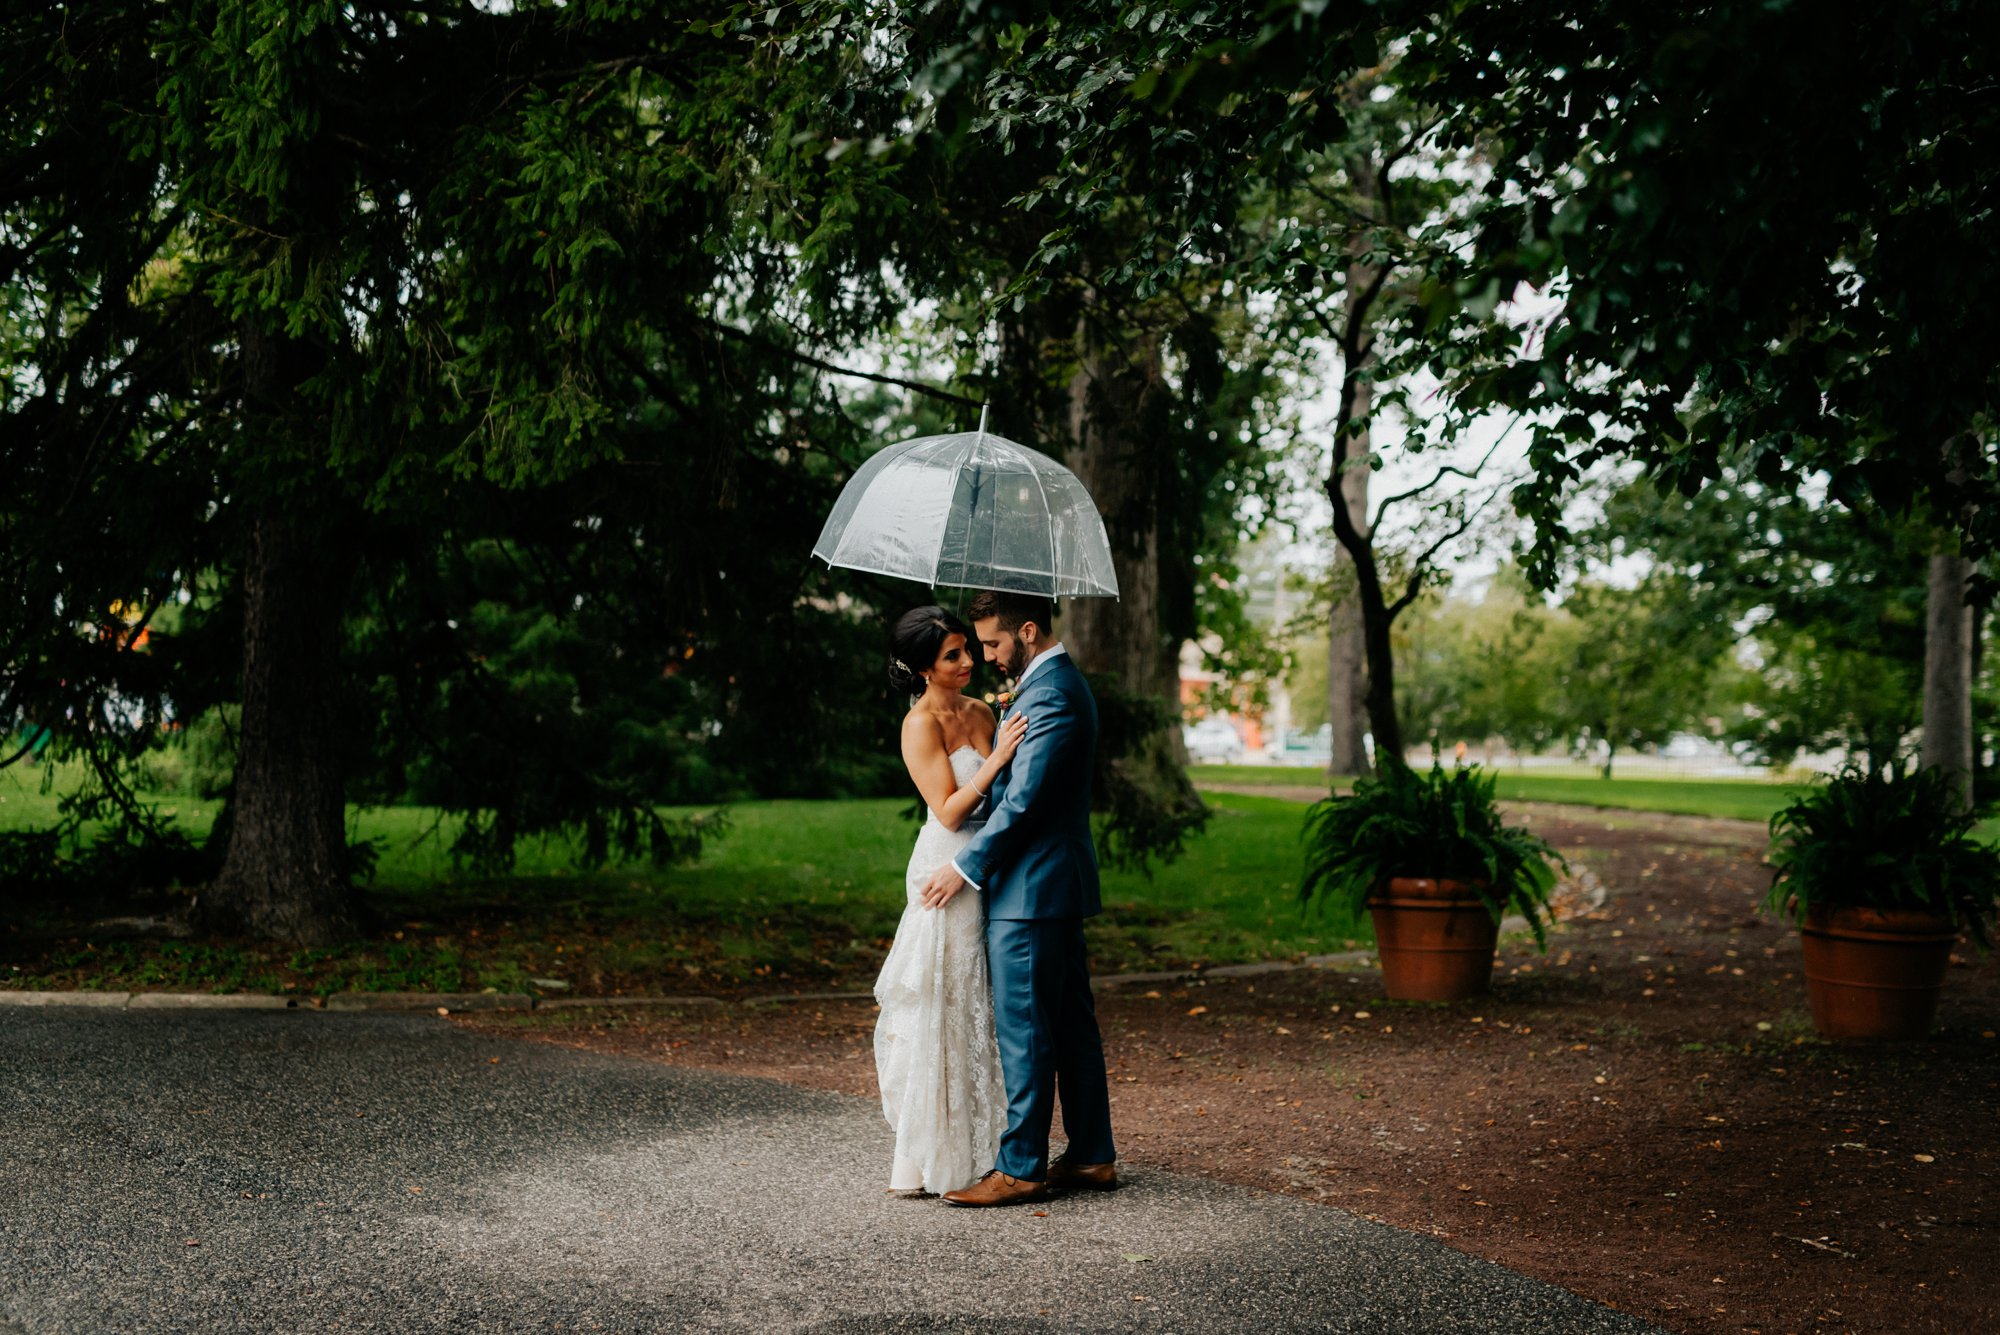 Lush Rainy Wedding at Knowlton Mansion in Philadelphia PA Moody Shadows and Umbrella Portraits